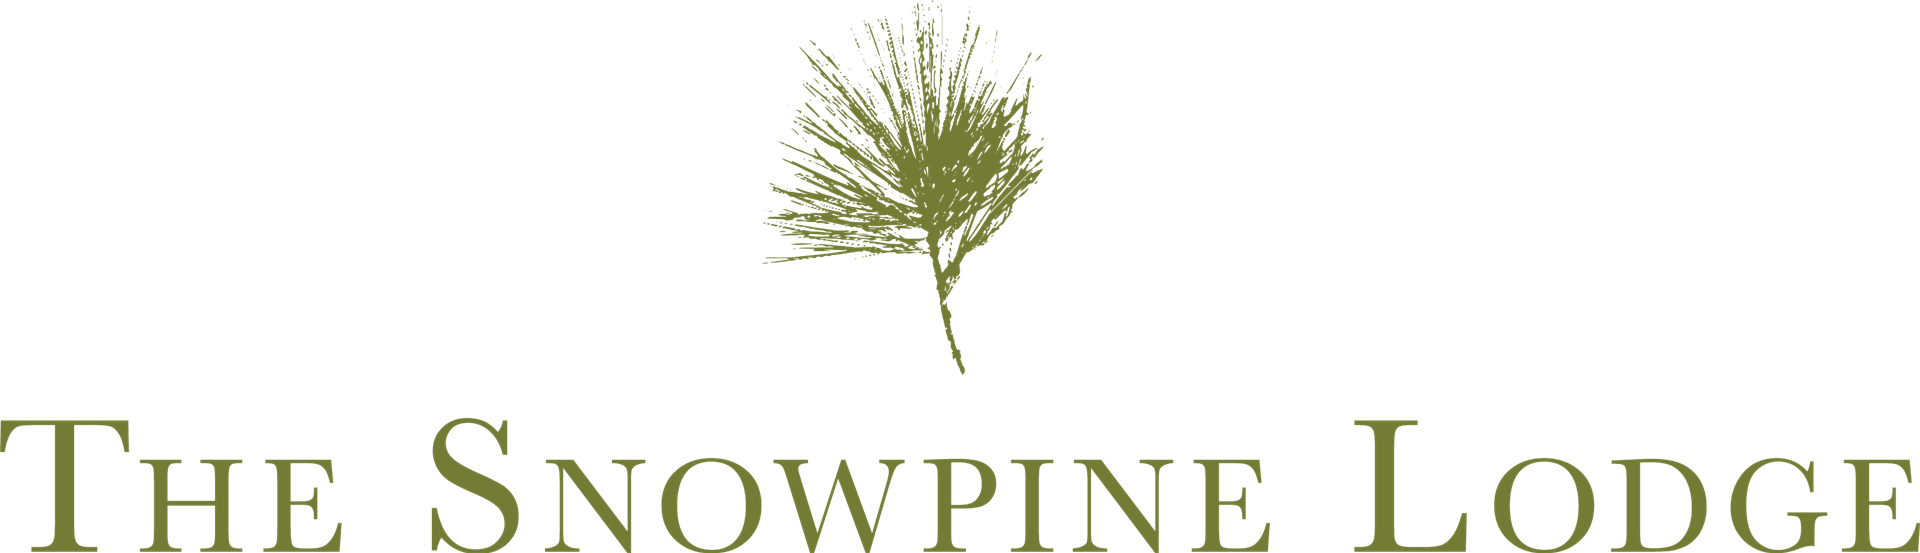 The Snowpine Lodge